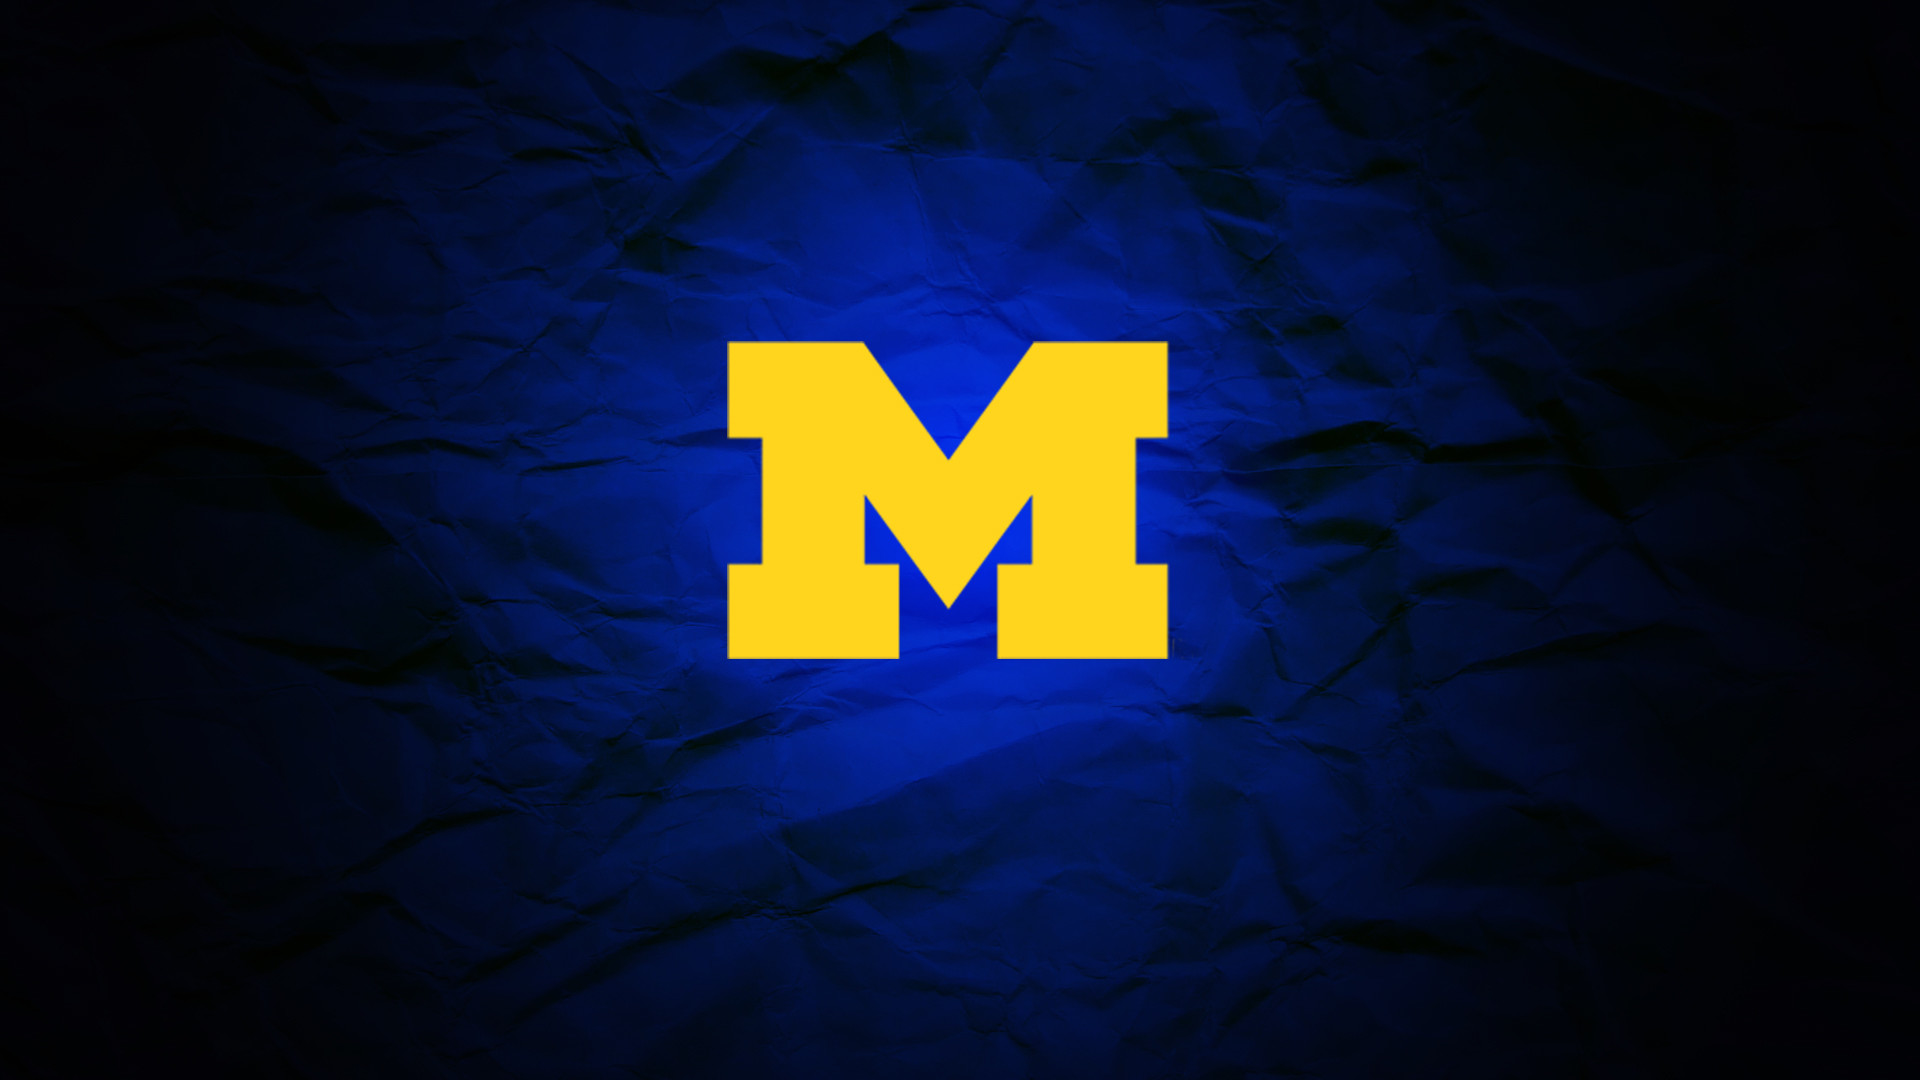 Michigan Wolverines Screensaver and Wallpaper 72 images 1920x1080